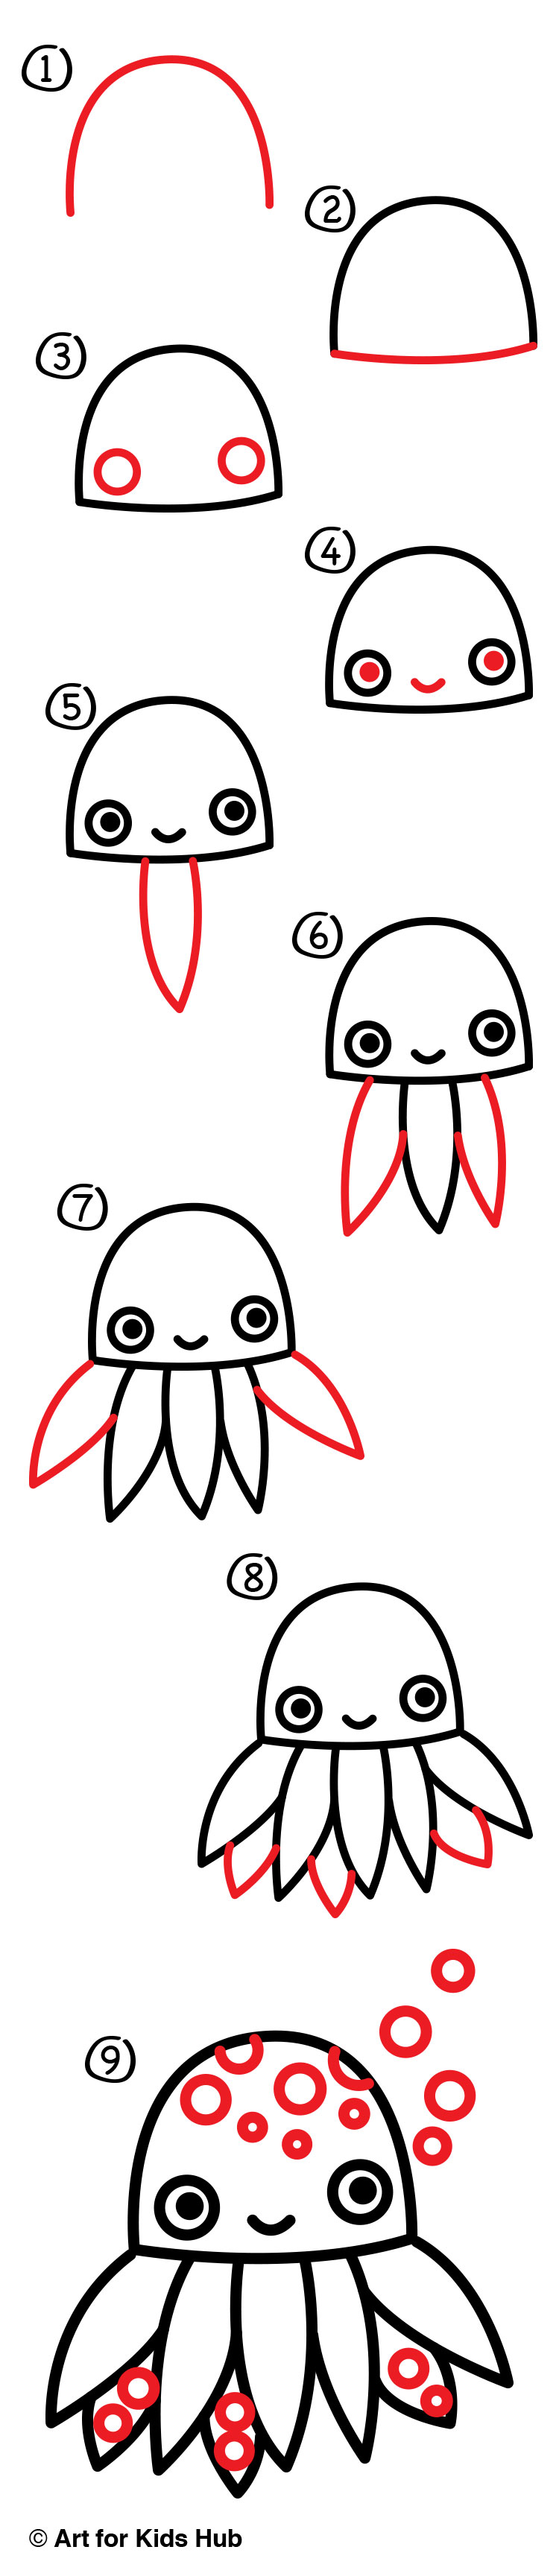 how to draw a cartoon octopus art for kids hub